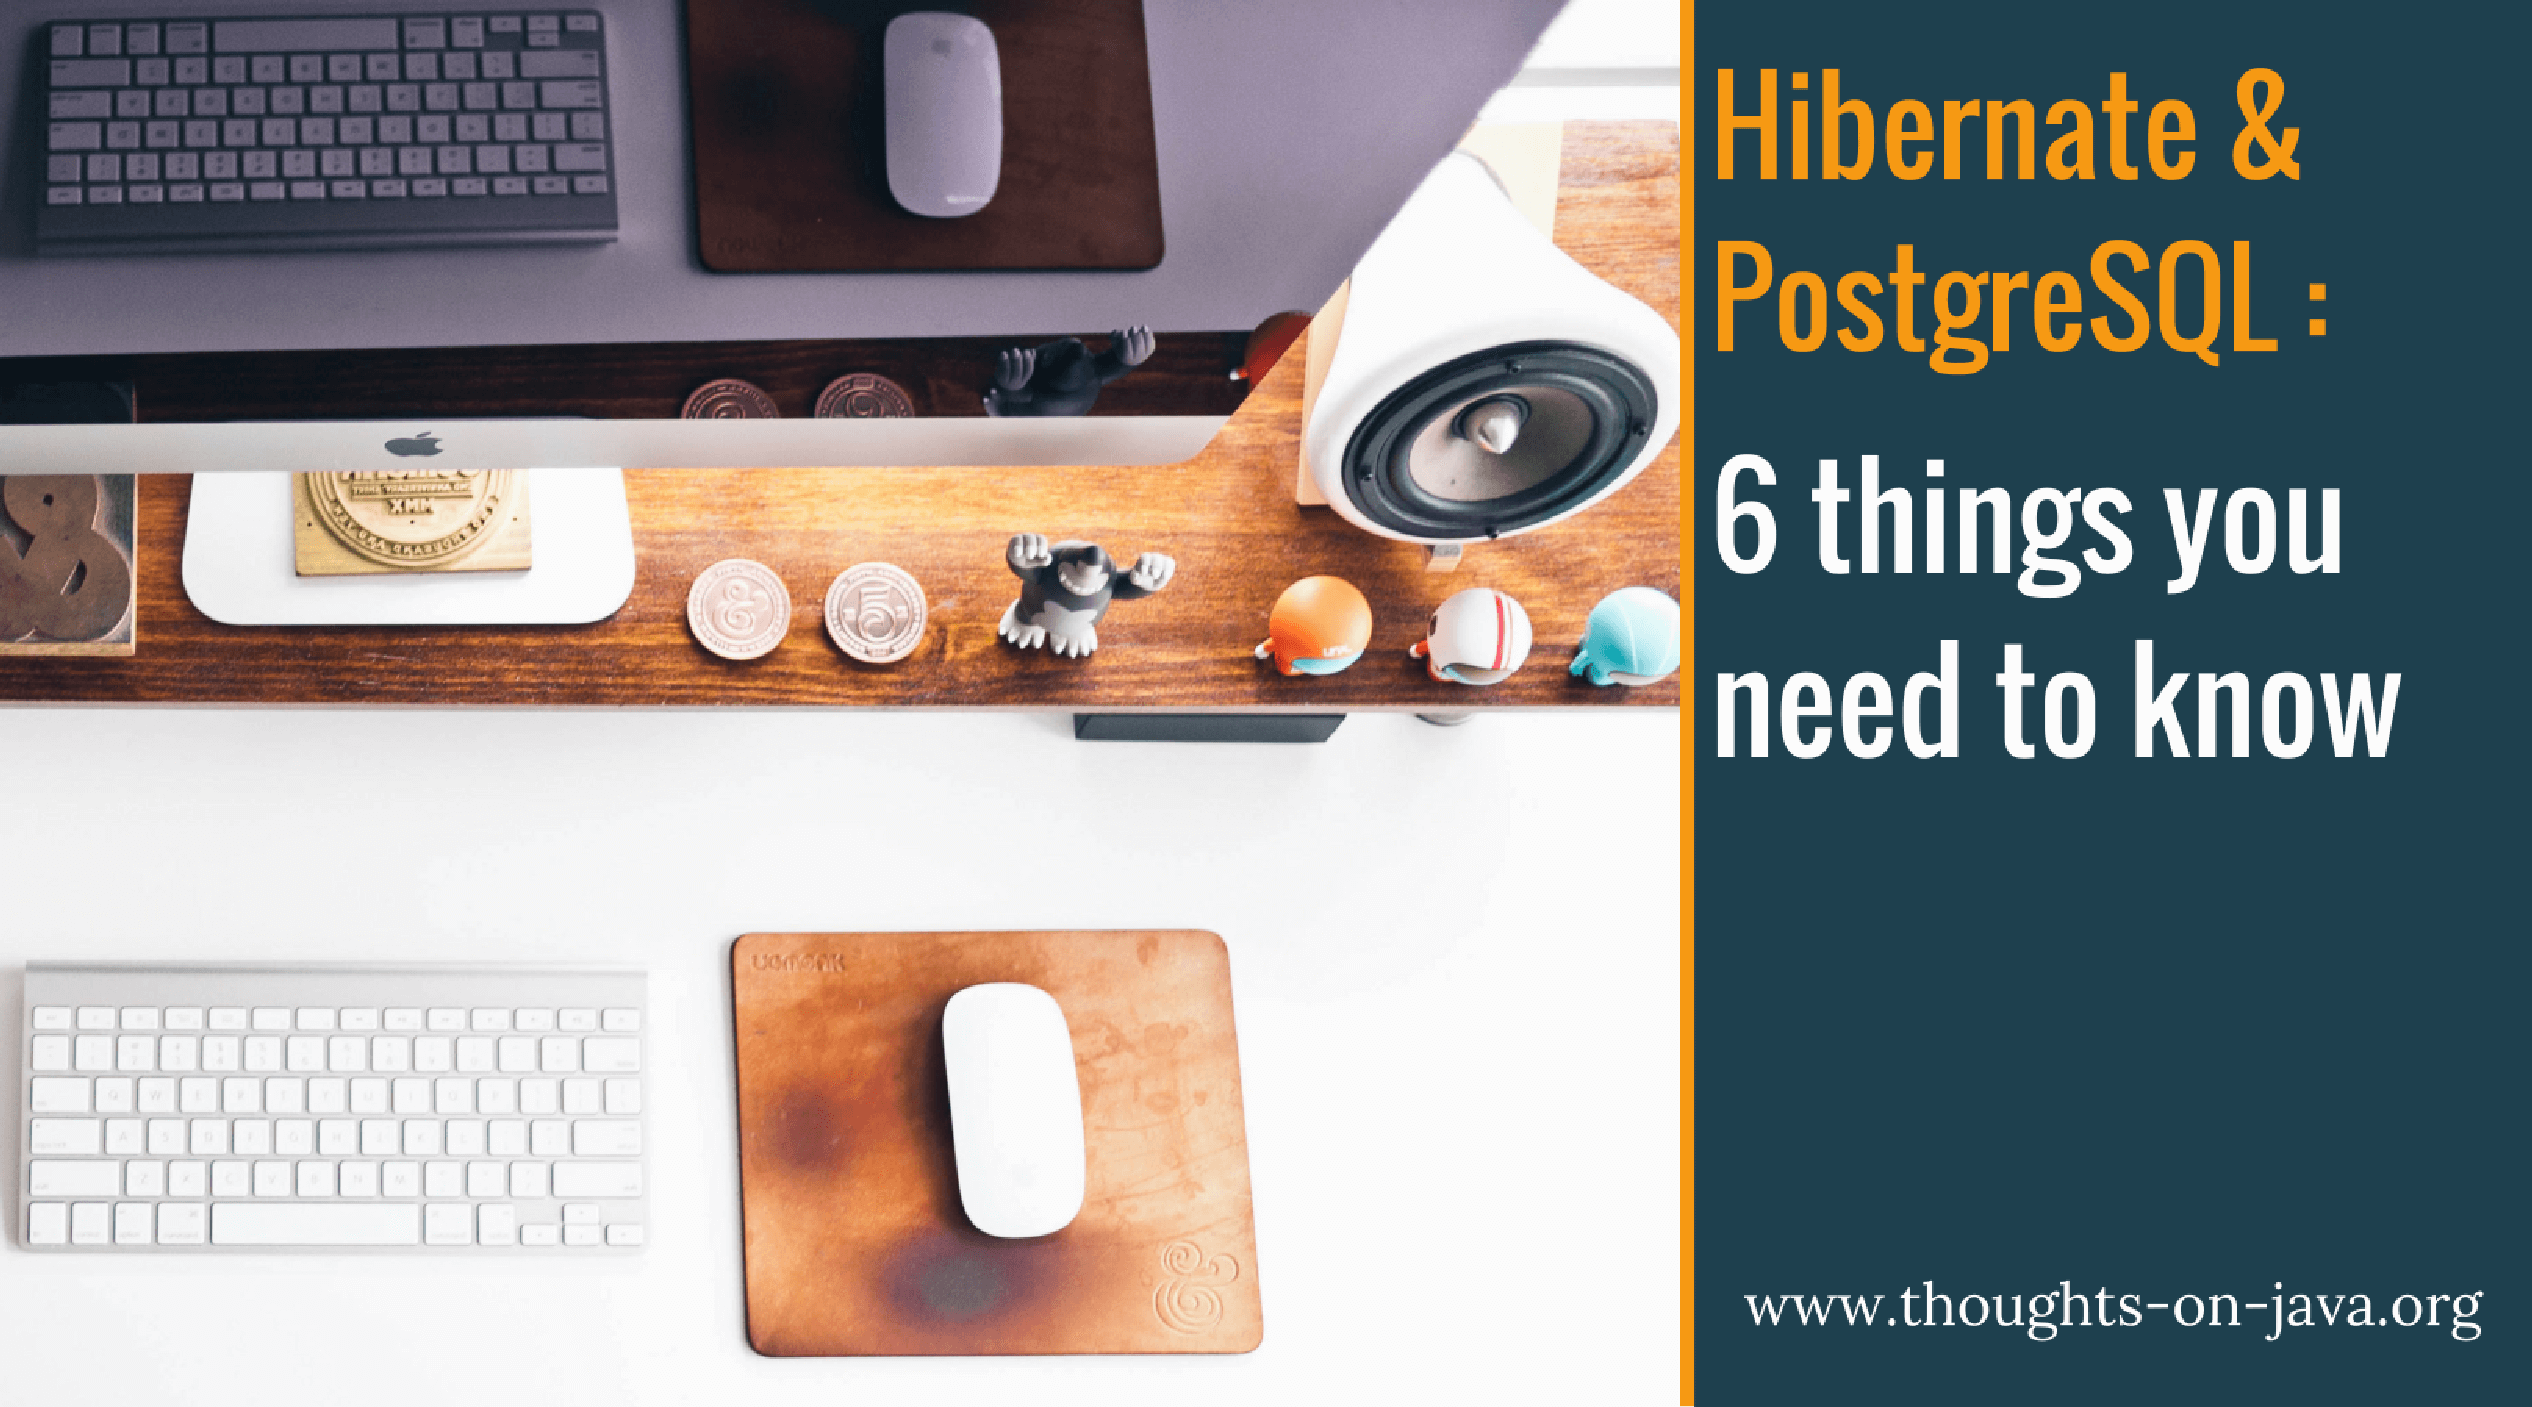 Hibernate with PostgreSQL - 6 things you need to know